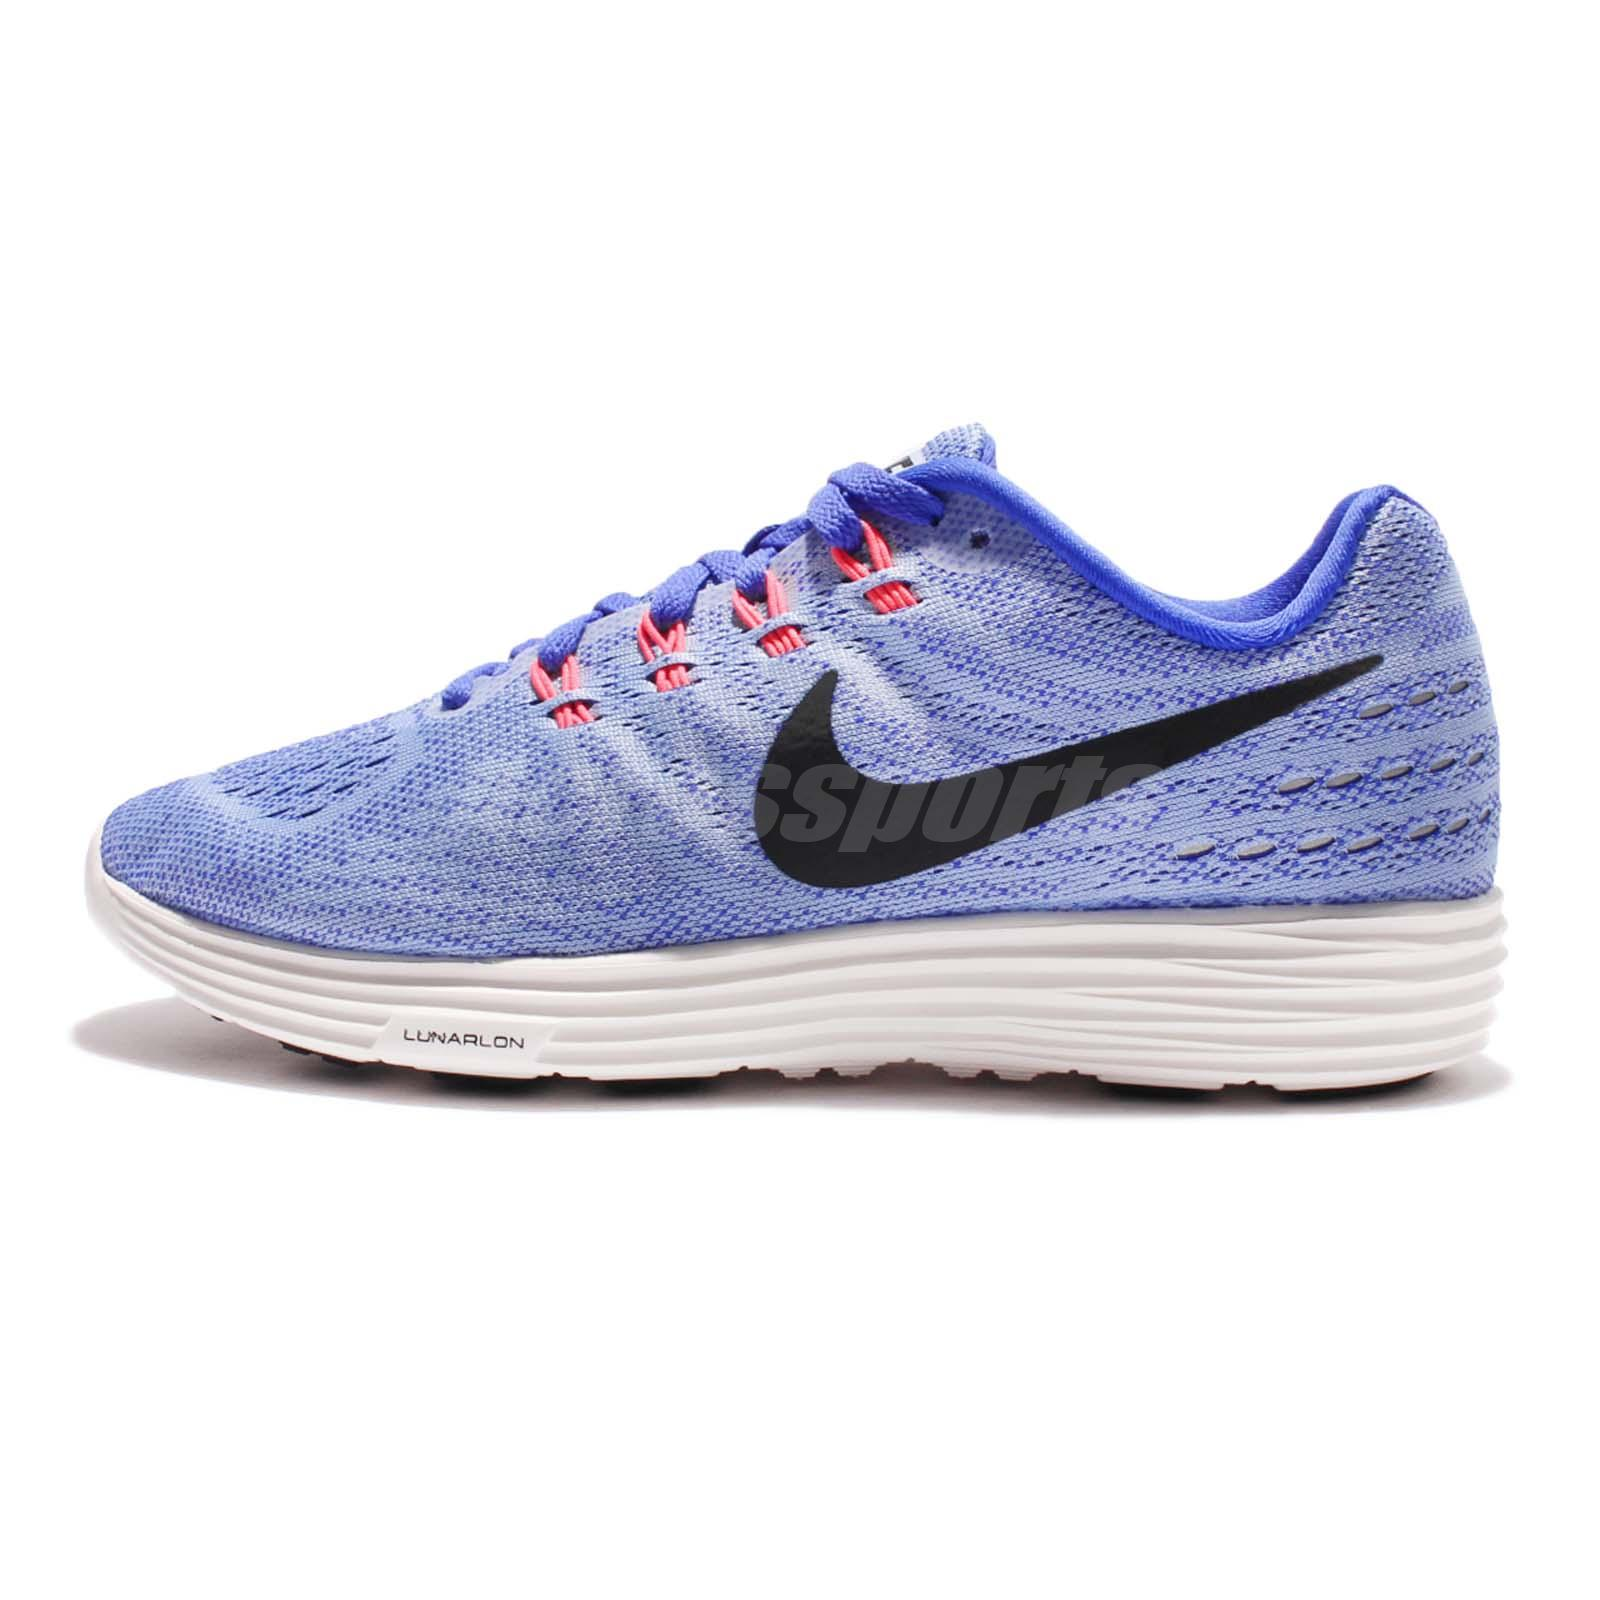 02703789448f0 Wmns Nike Lunartempo 2 II Blue Black Women Running Shoes Sneakers 818098-408